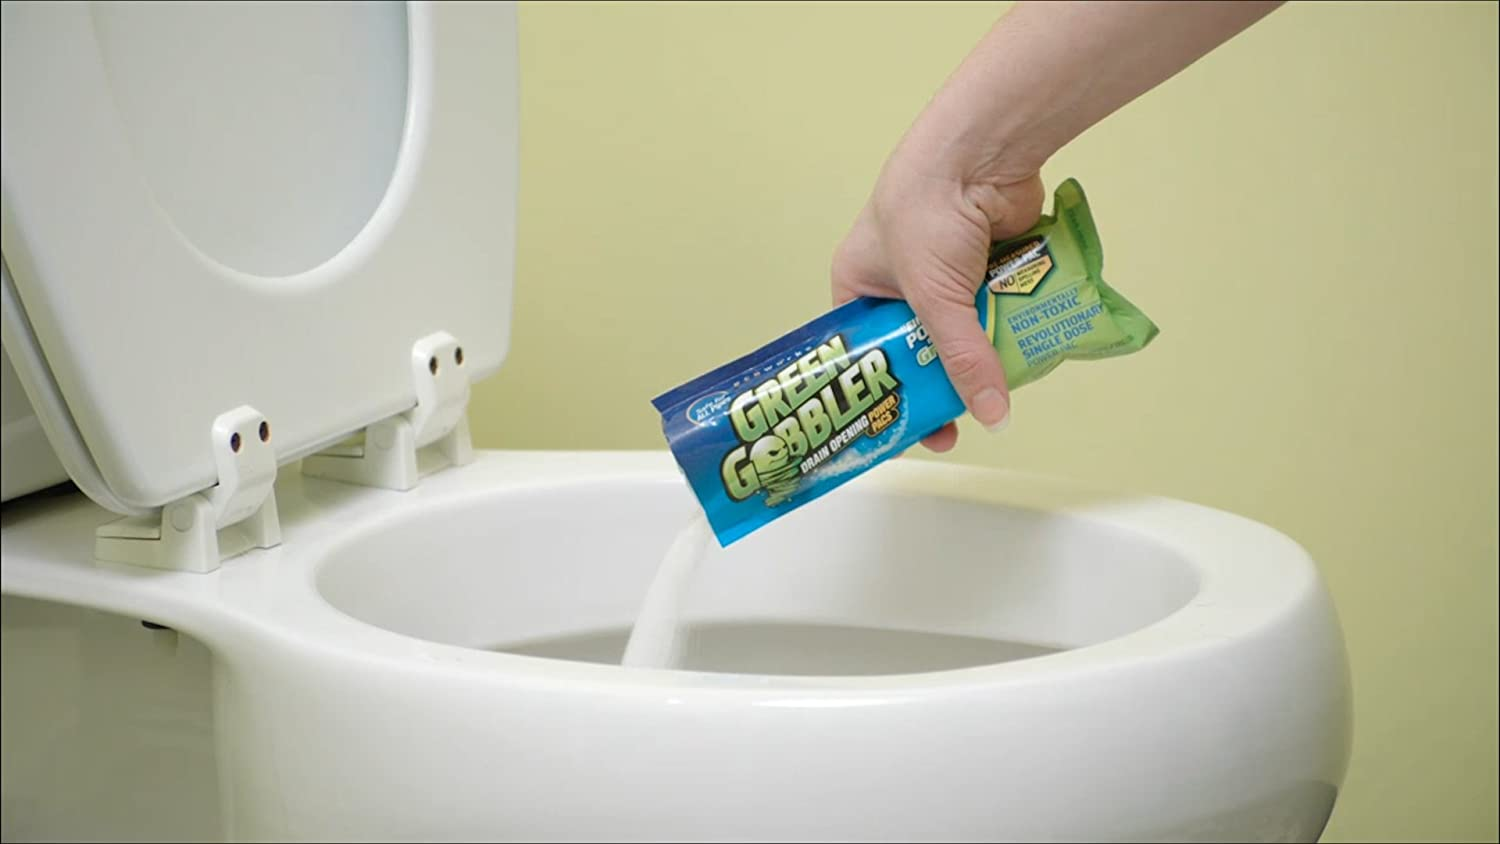 com green gobbler drain opening pac s oz pack com green gobbler drain opening pac s 8 25 oz 5 pack home kitchen